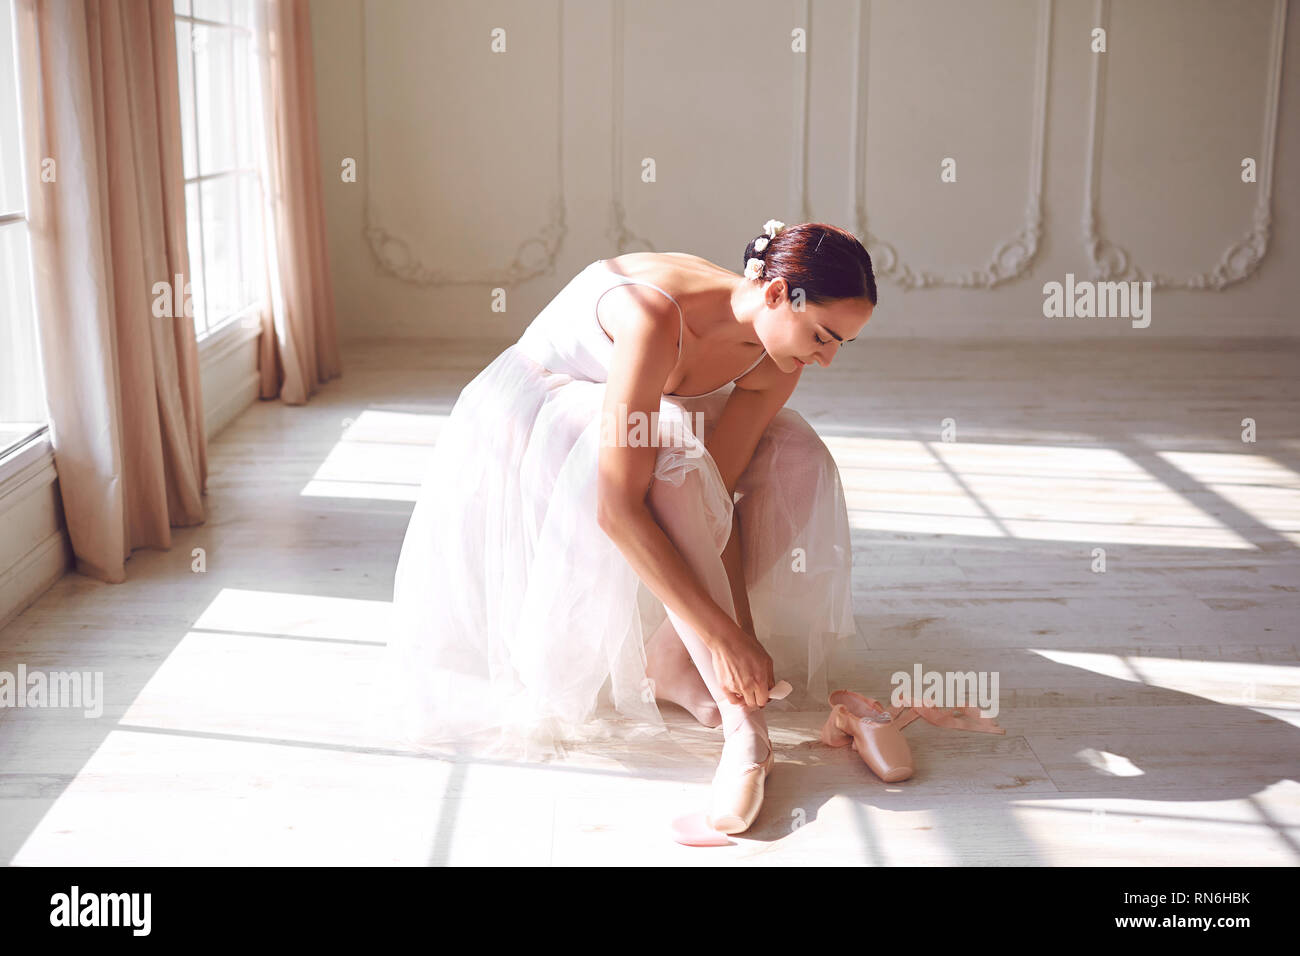 Ballerina wearing pointe shoes in the room Stock Photo